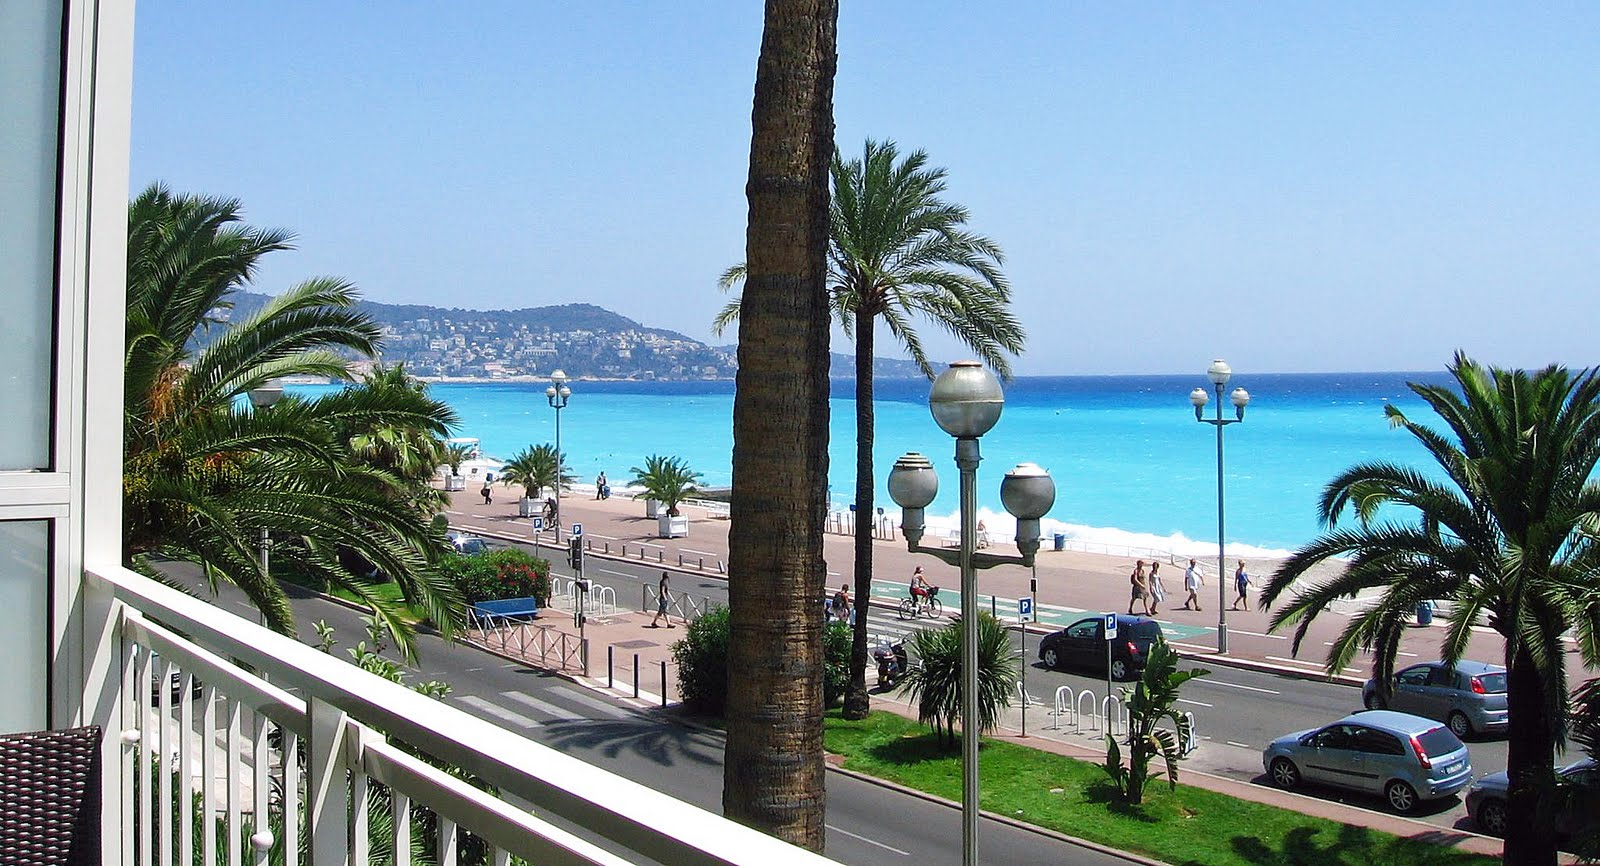 4 Bedroom Apartments For Rent The Promenade Des Anglais Blog Superb Seafront Apartment